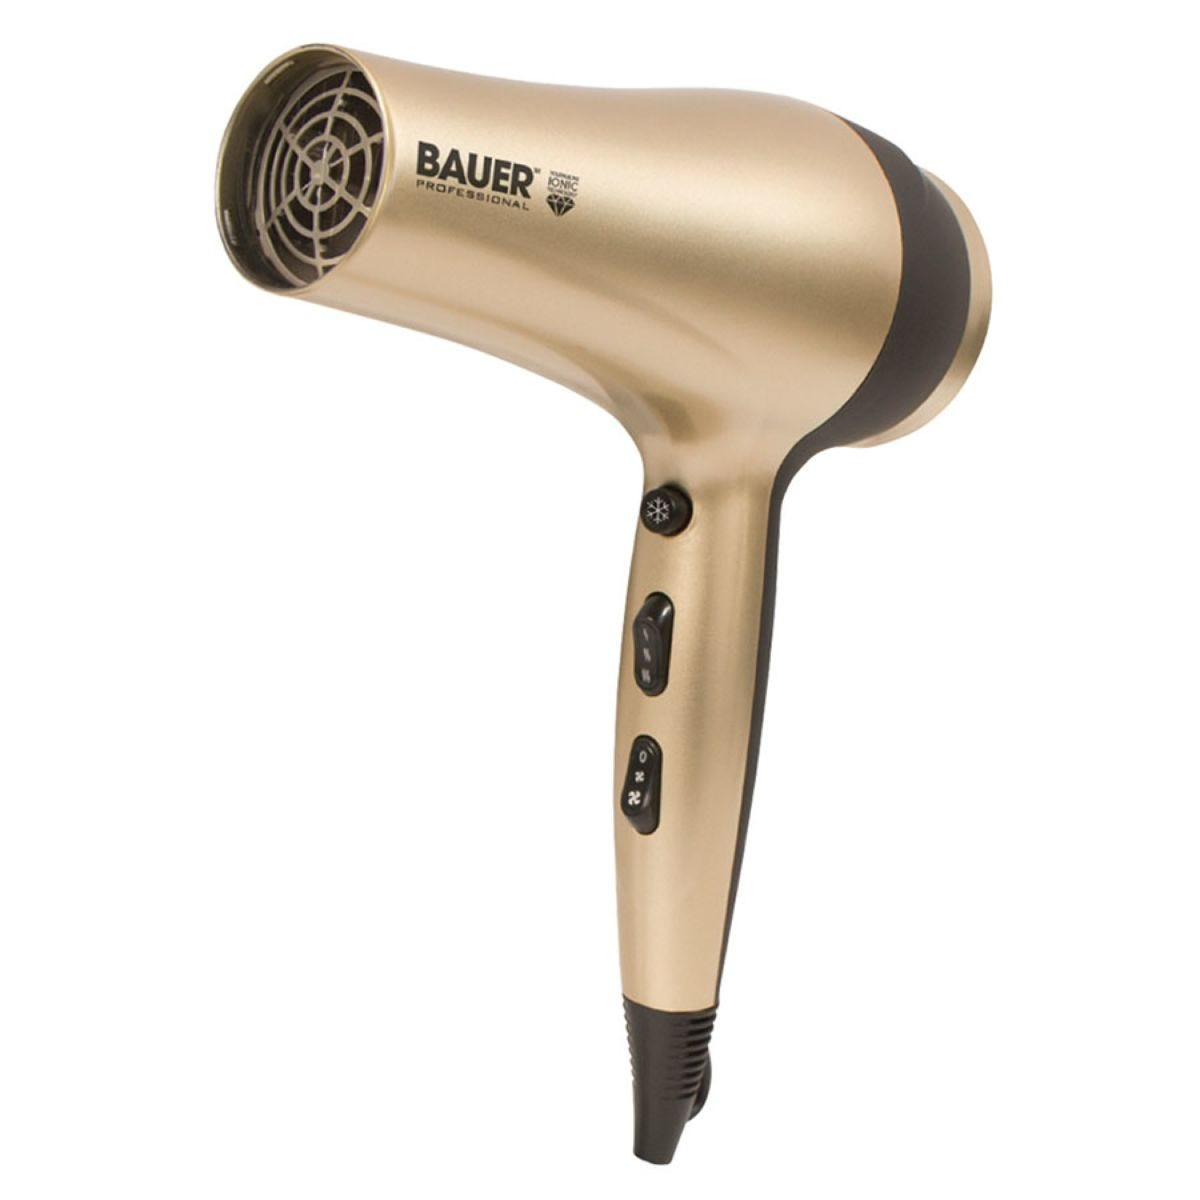 Bauer 38830 TourmaPro 2200W Ionic Hairdryer with Concentrator Nozzle – Gold